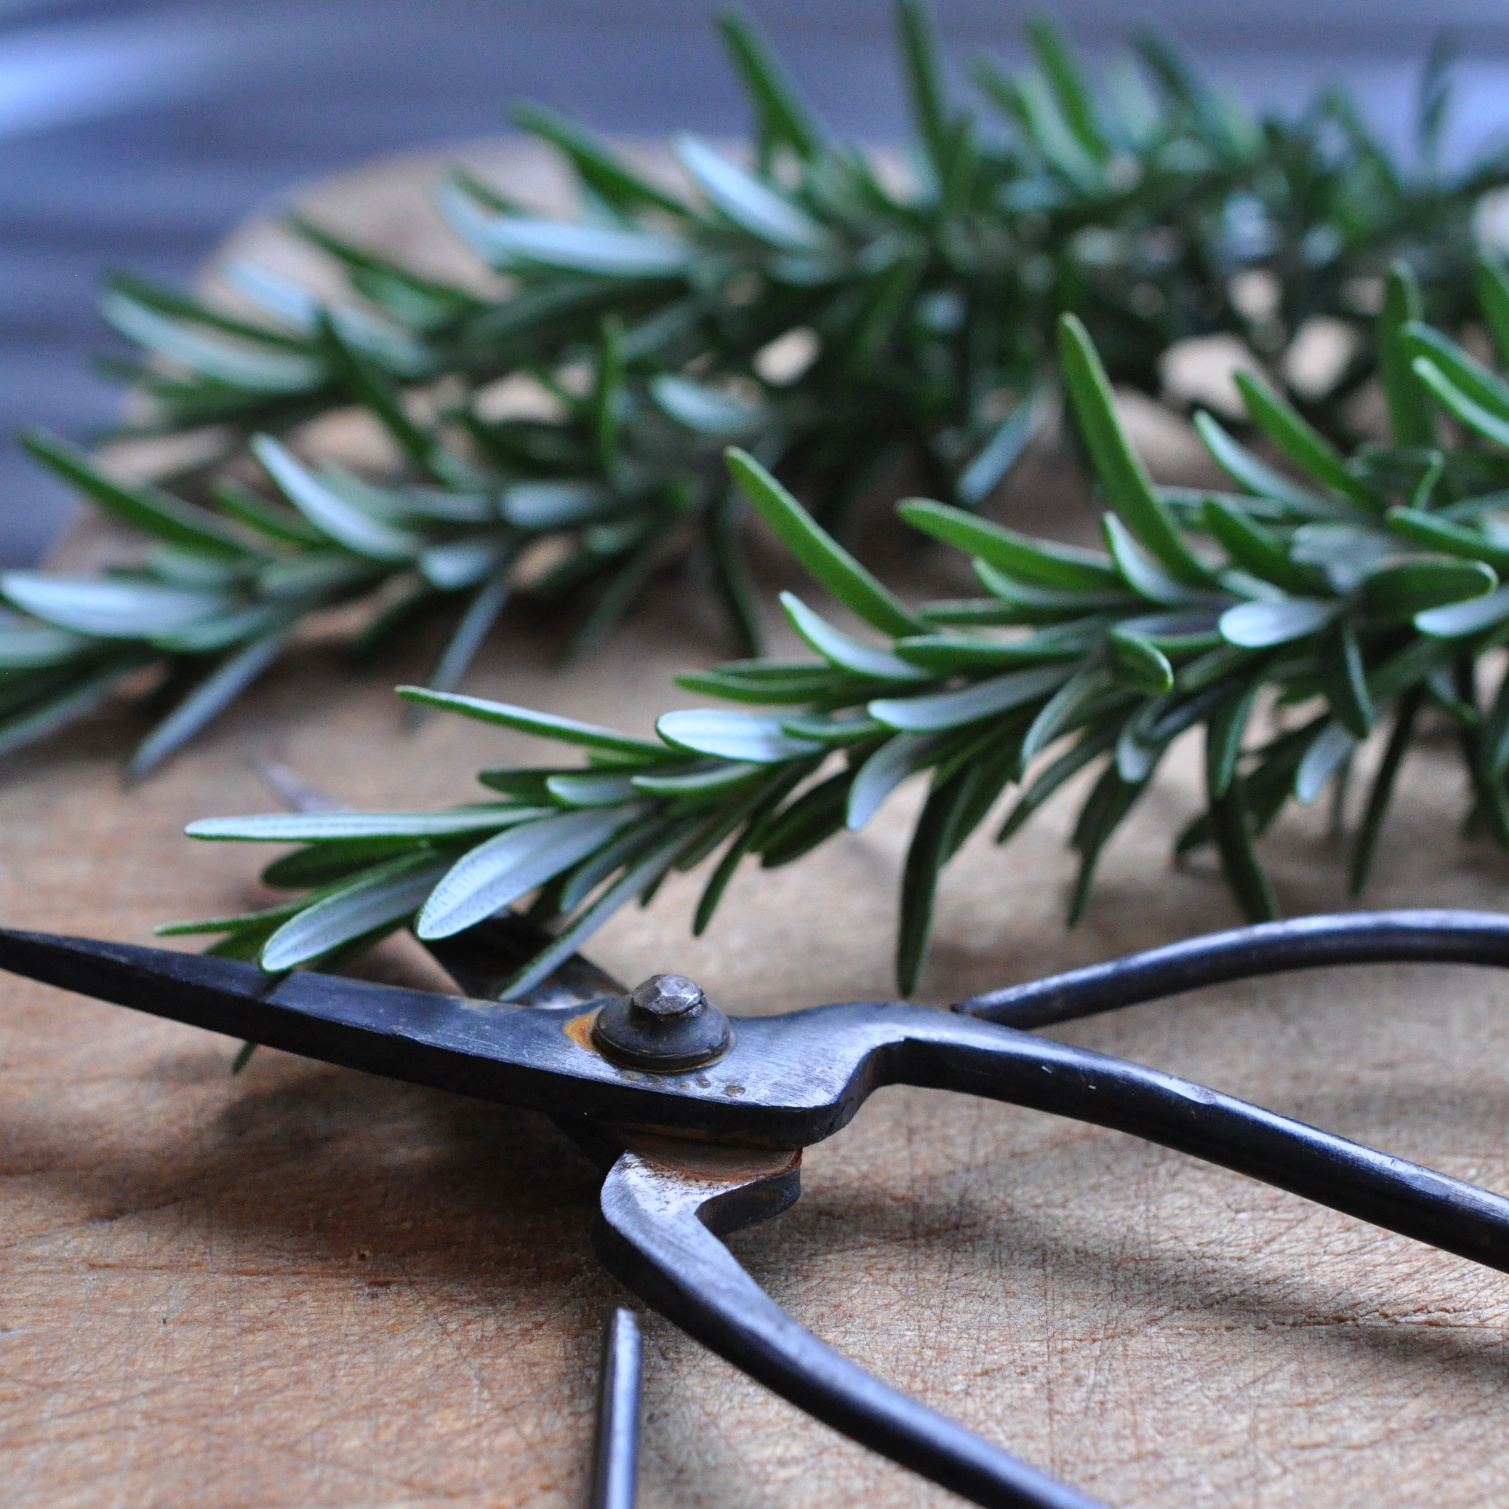 Fresh rosemary from the garden